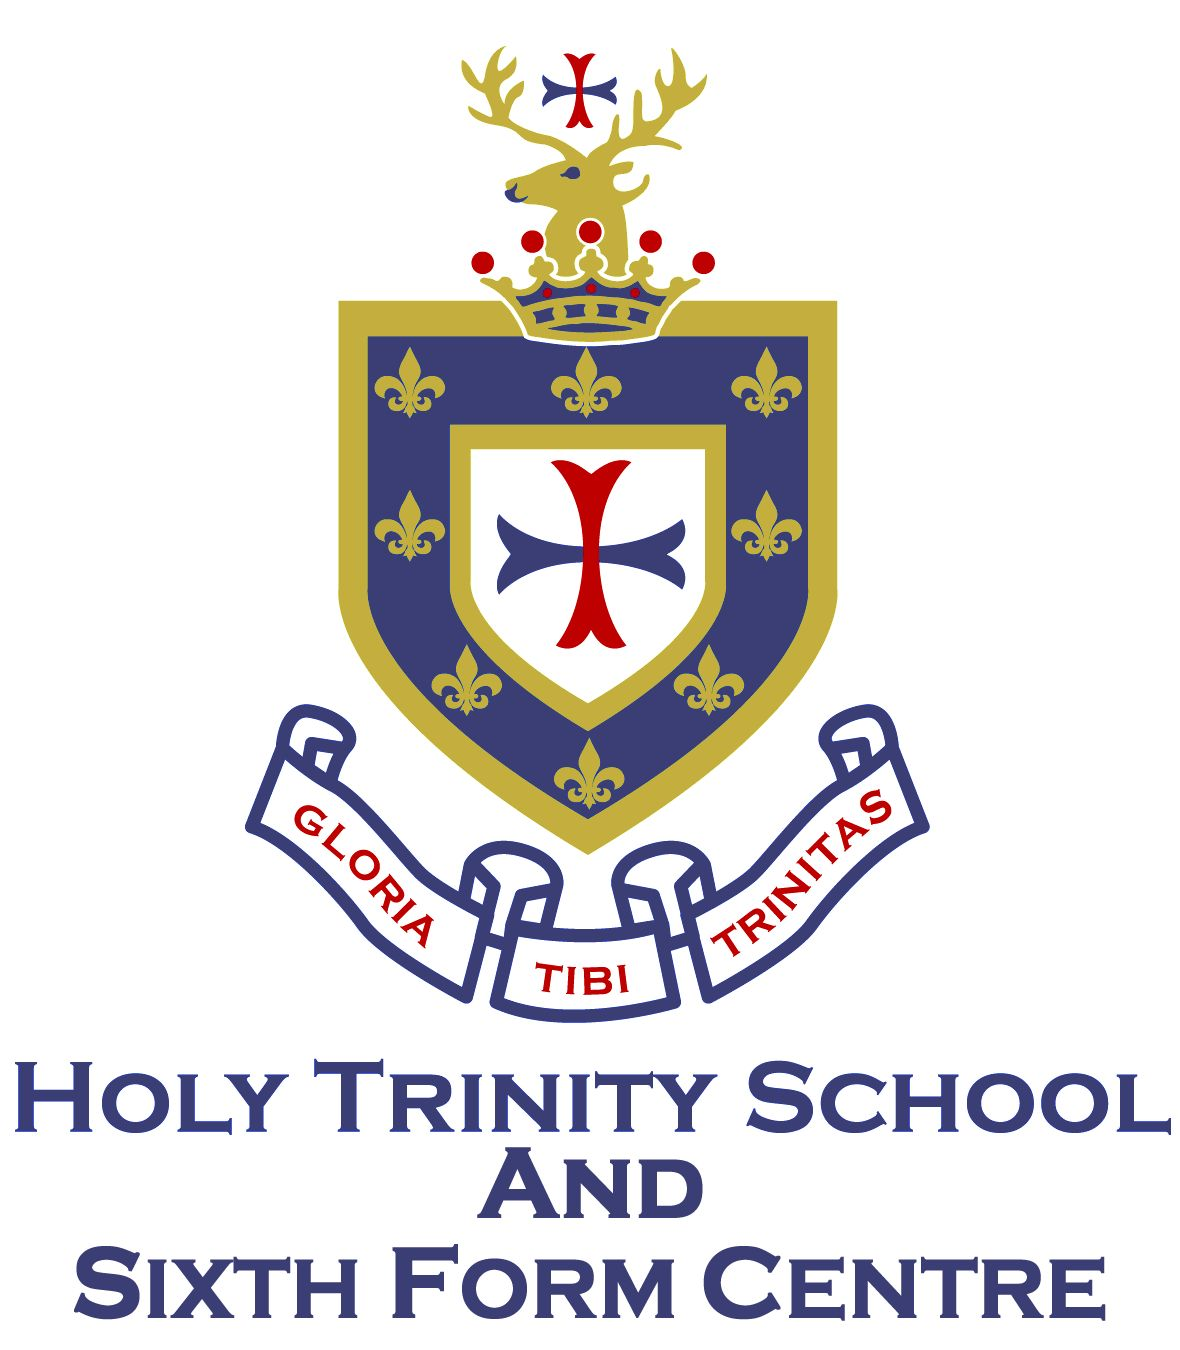 Governors' Clerk Sought by Kidderminster's Holy Trinity School and Sixth Form Centre